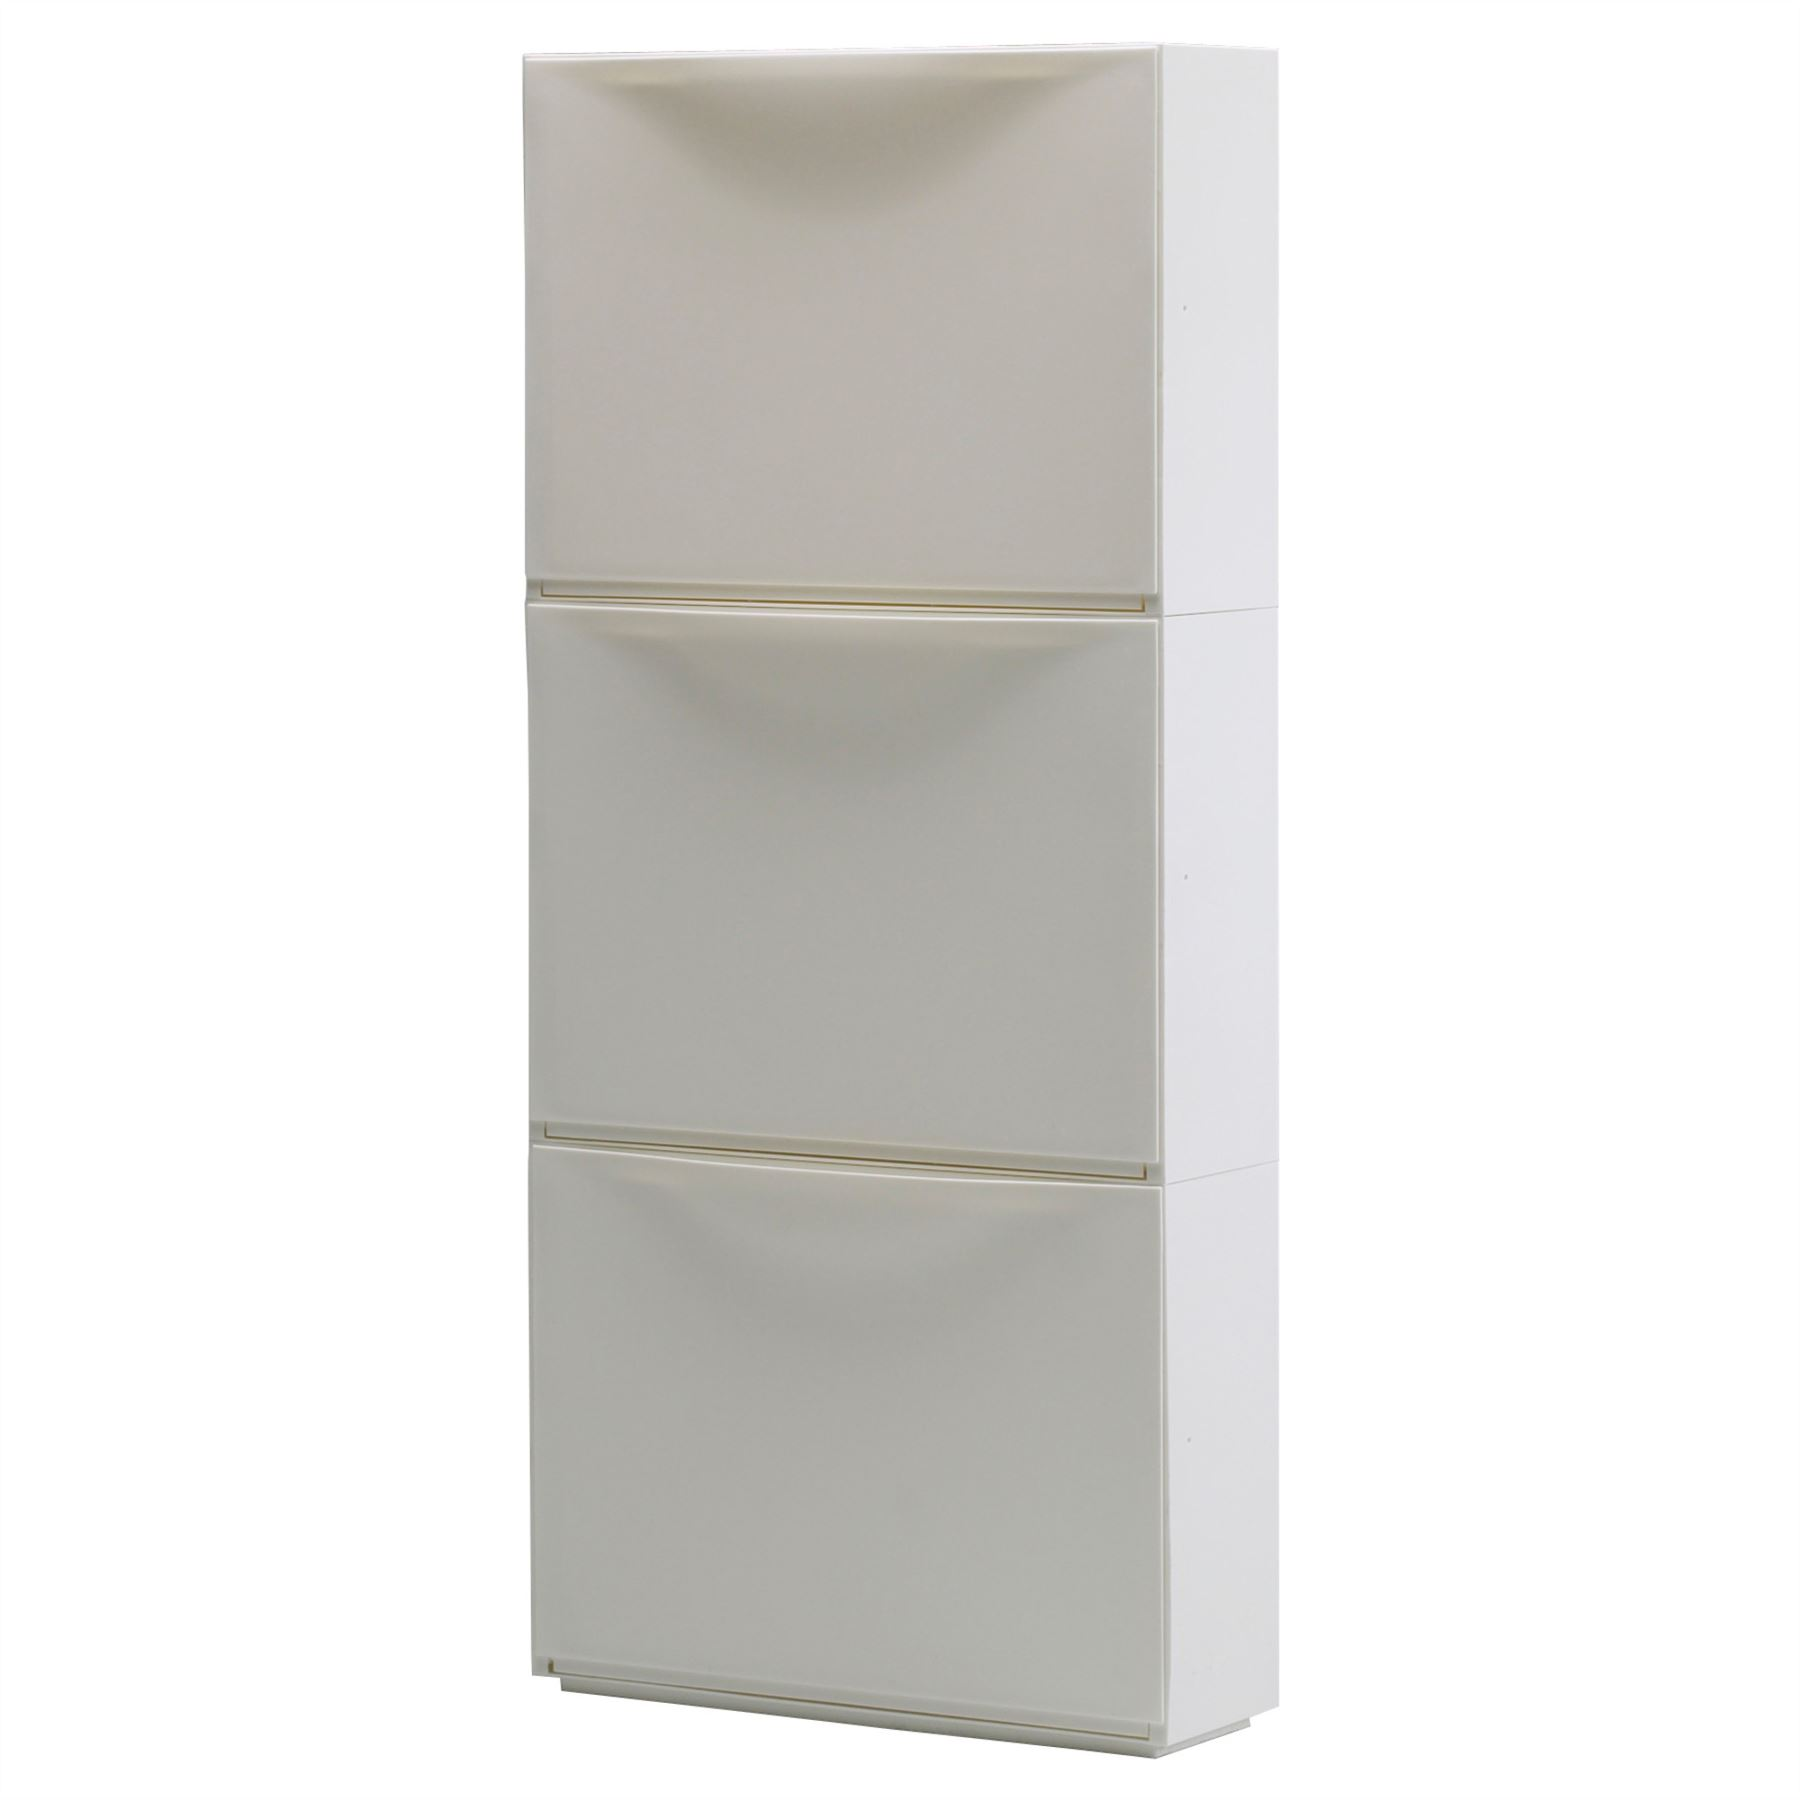 Ikea Trones Shoe Storage Cabinet 3 Pack White New eBay